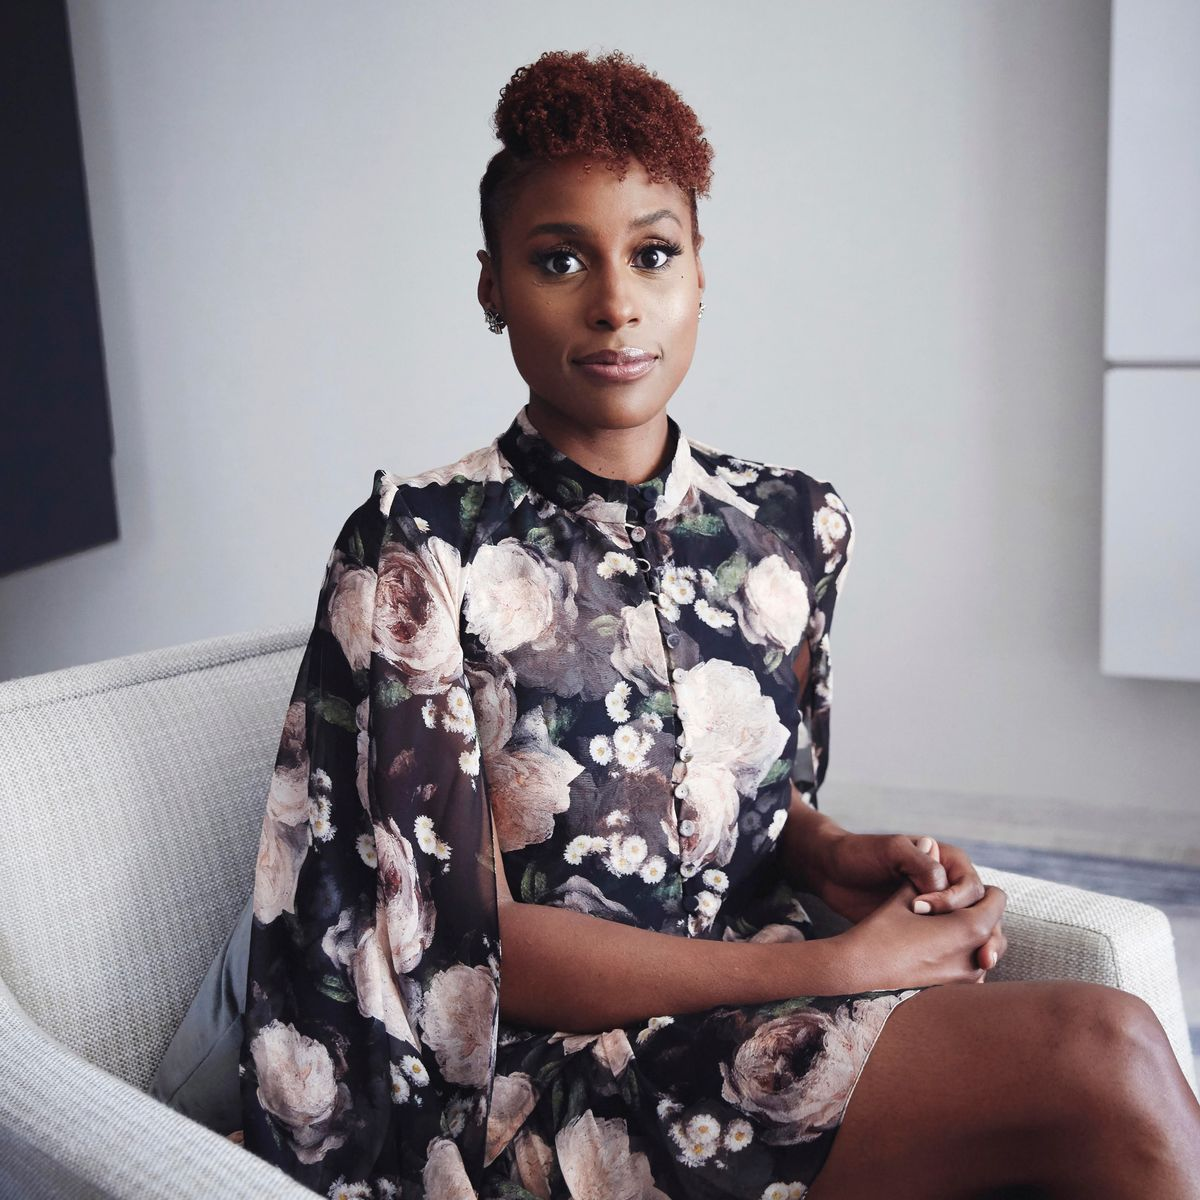 Issa Rae Is Now the Co-Owner and Face of Sienna Naturals